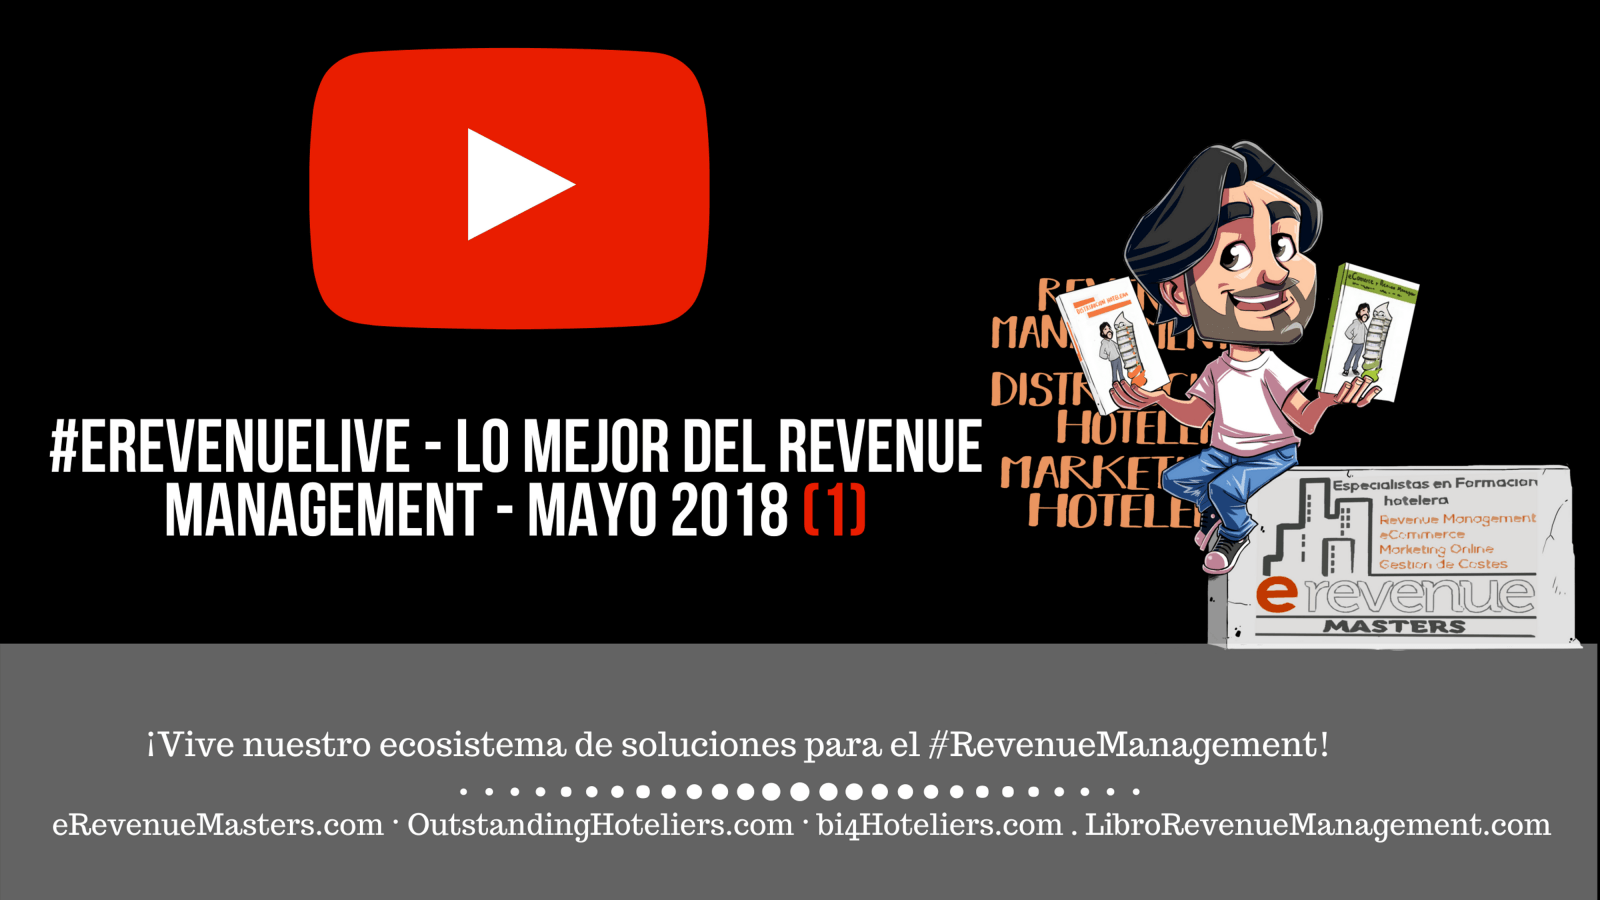 (video & Podcast) #eRevenueLive - Lo mejor del Revenue Management - mayo 2018 (1)